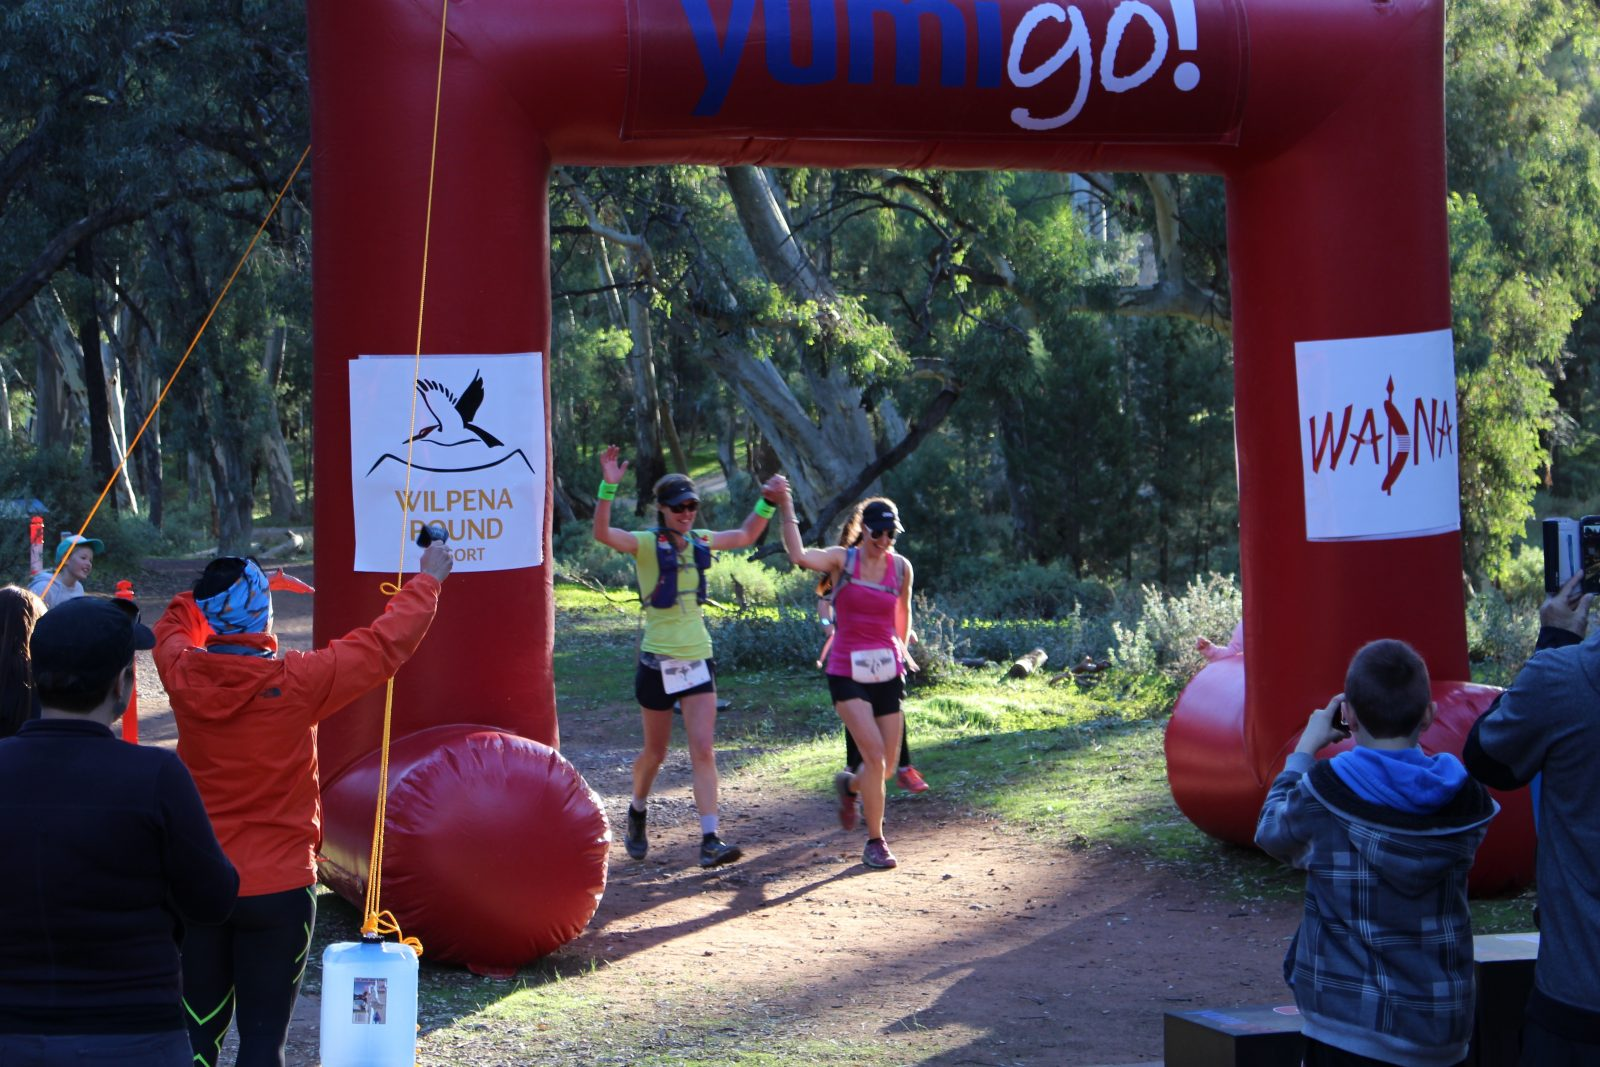 Experience the exhilaration and relief of crossing the finish line at the Hubert 100